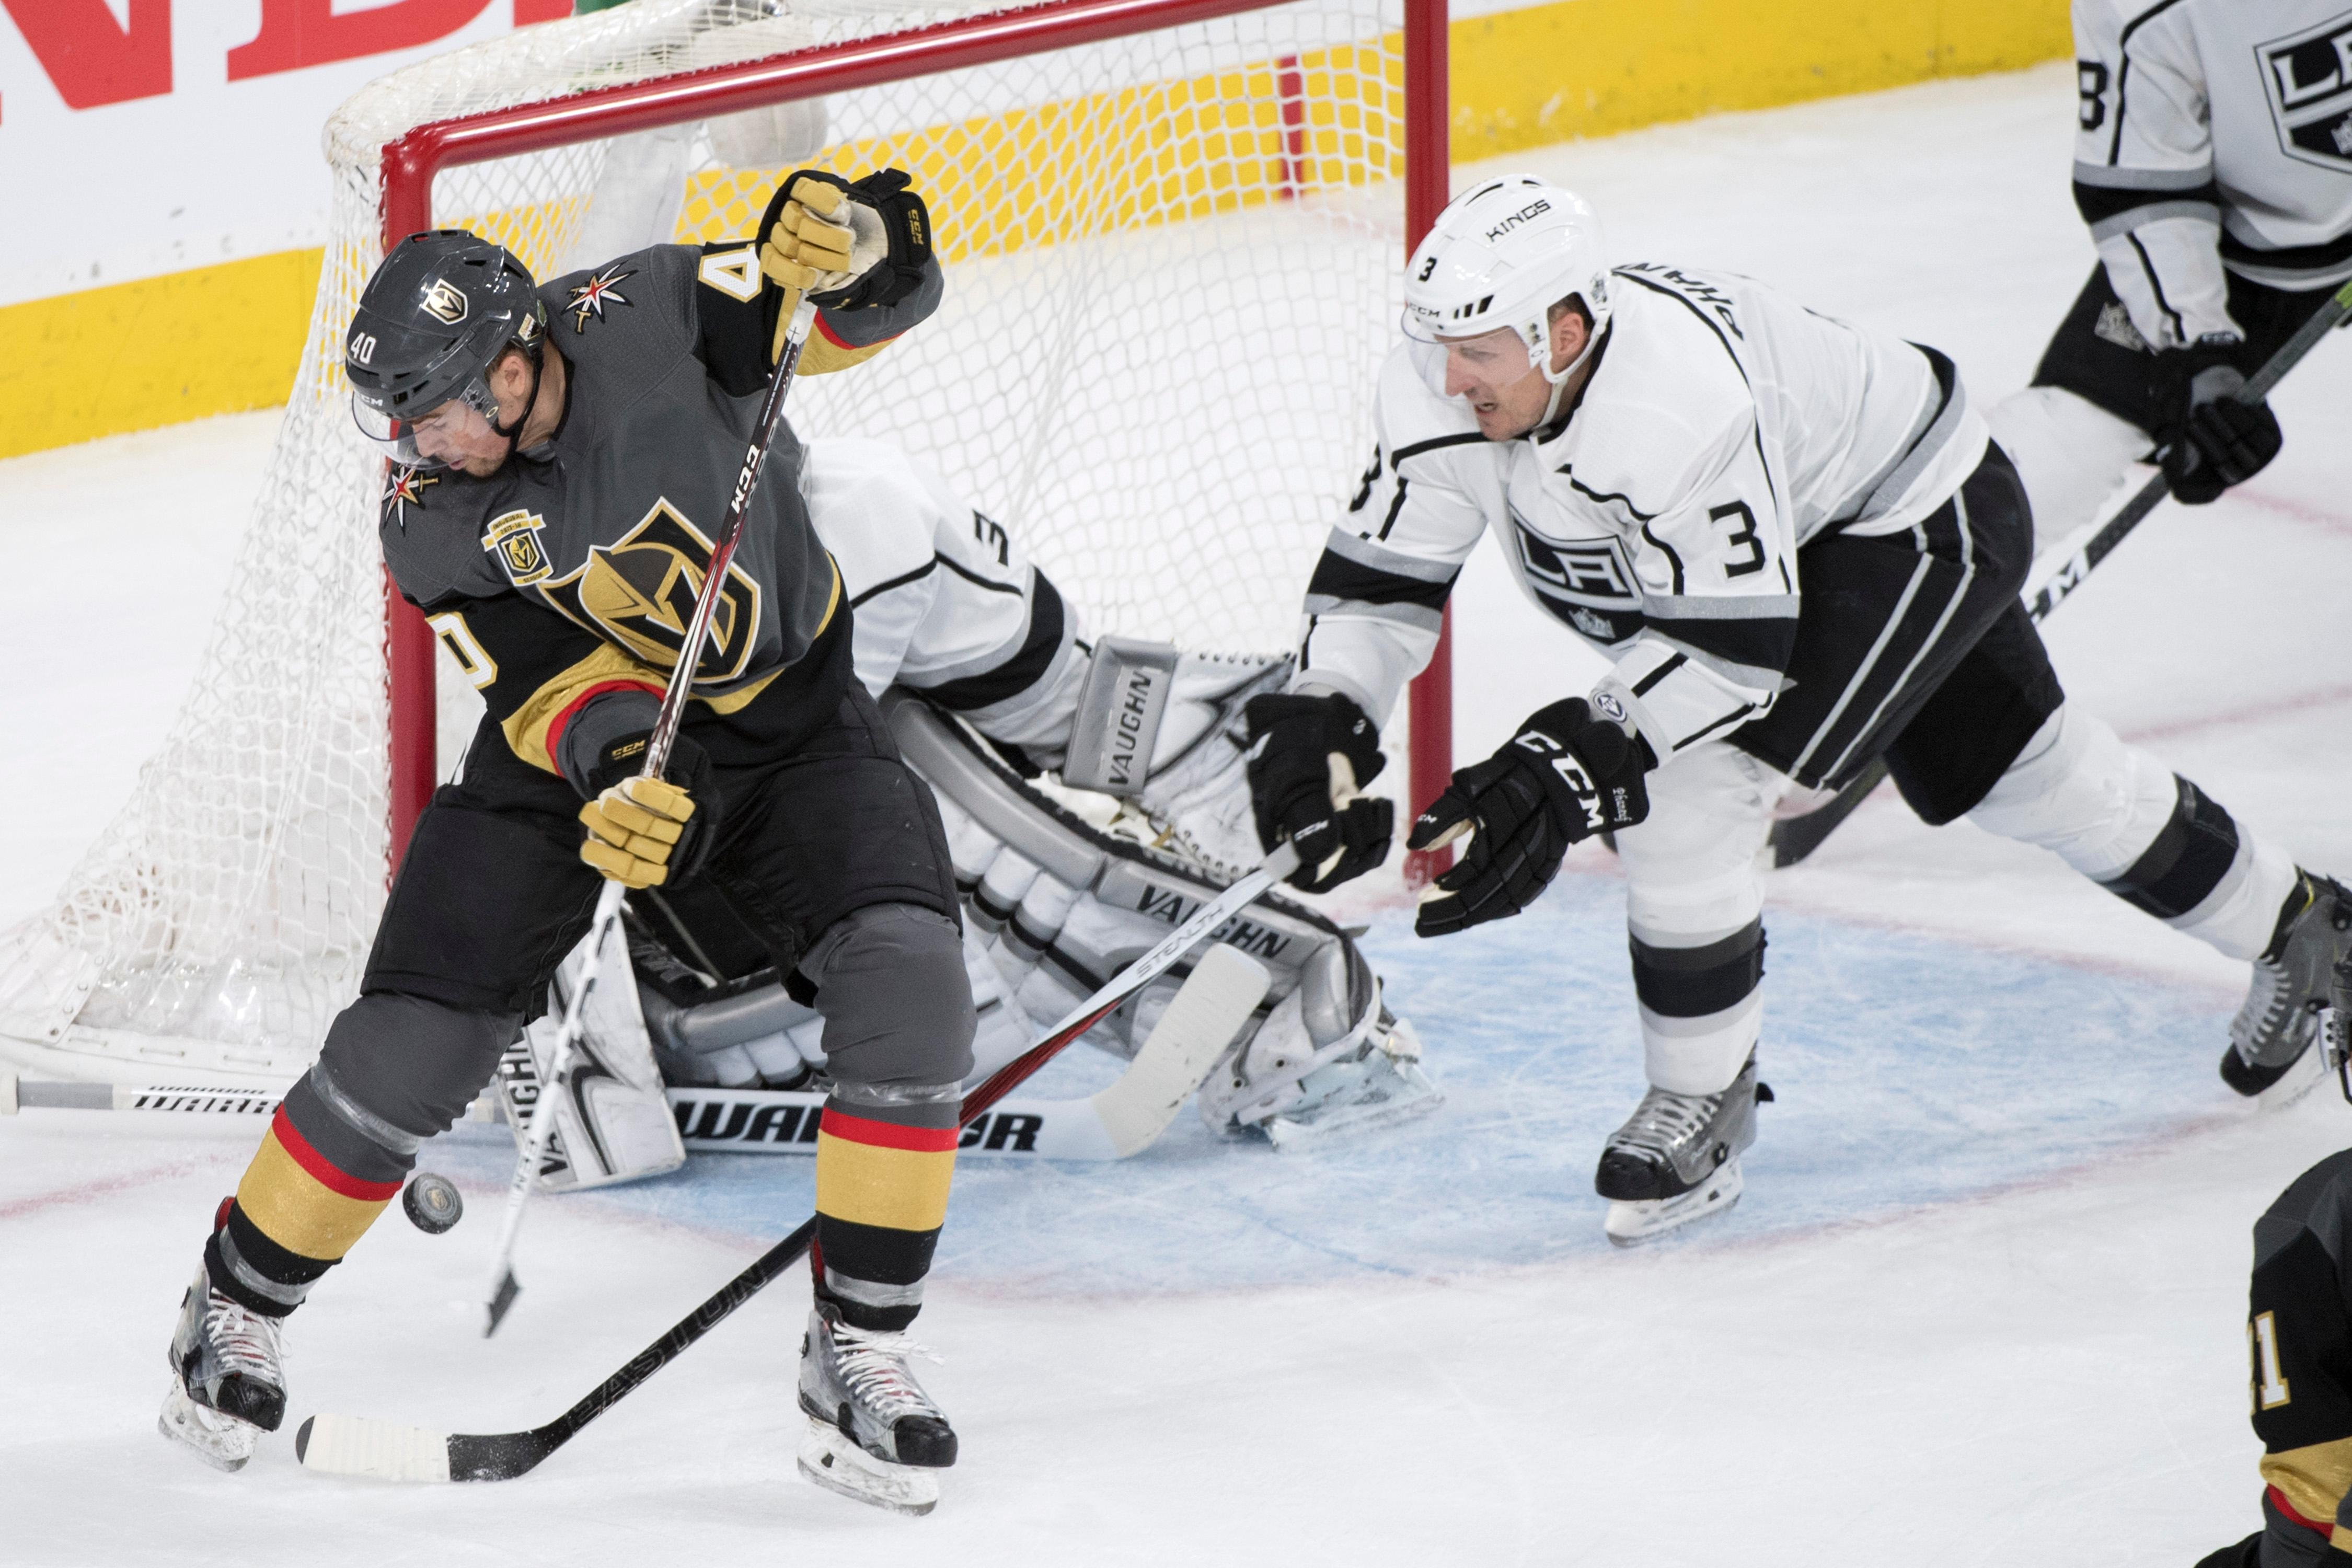 Vegas Golden Knights center Ryan Carpenter (40) attempts a backwards, between the leg shot against Los Angeles Kings goaltender Jonathan Quick (30) during the second period of Game 1 of their NHL hockey first-round playoff series Wednesday, April 11, 2018 at T-Mobile Arena. The Knights won 1-0. CREDIT: Sam Morris/Las Vegas News Bureau